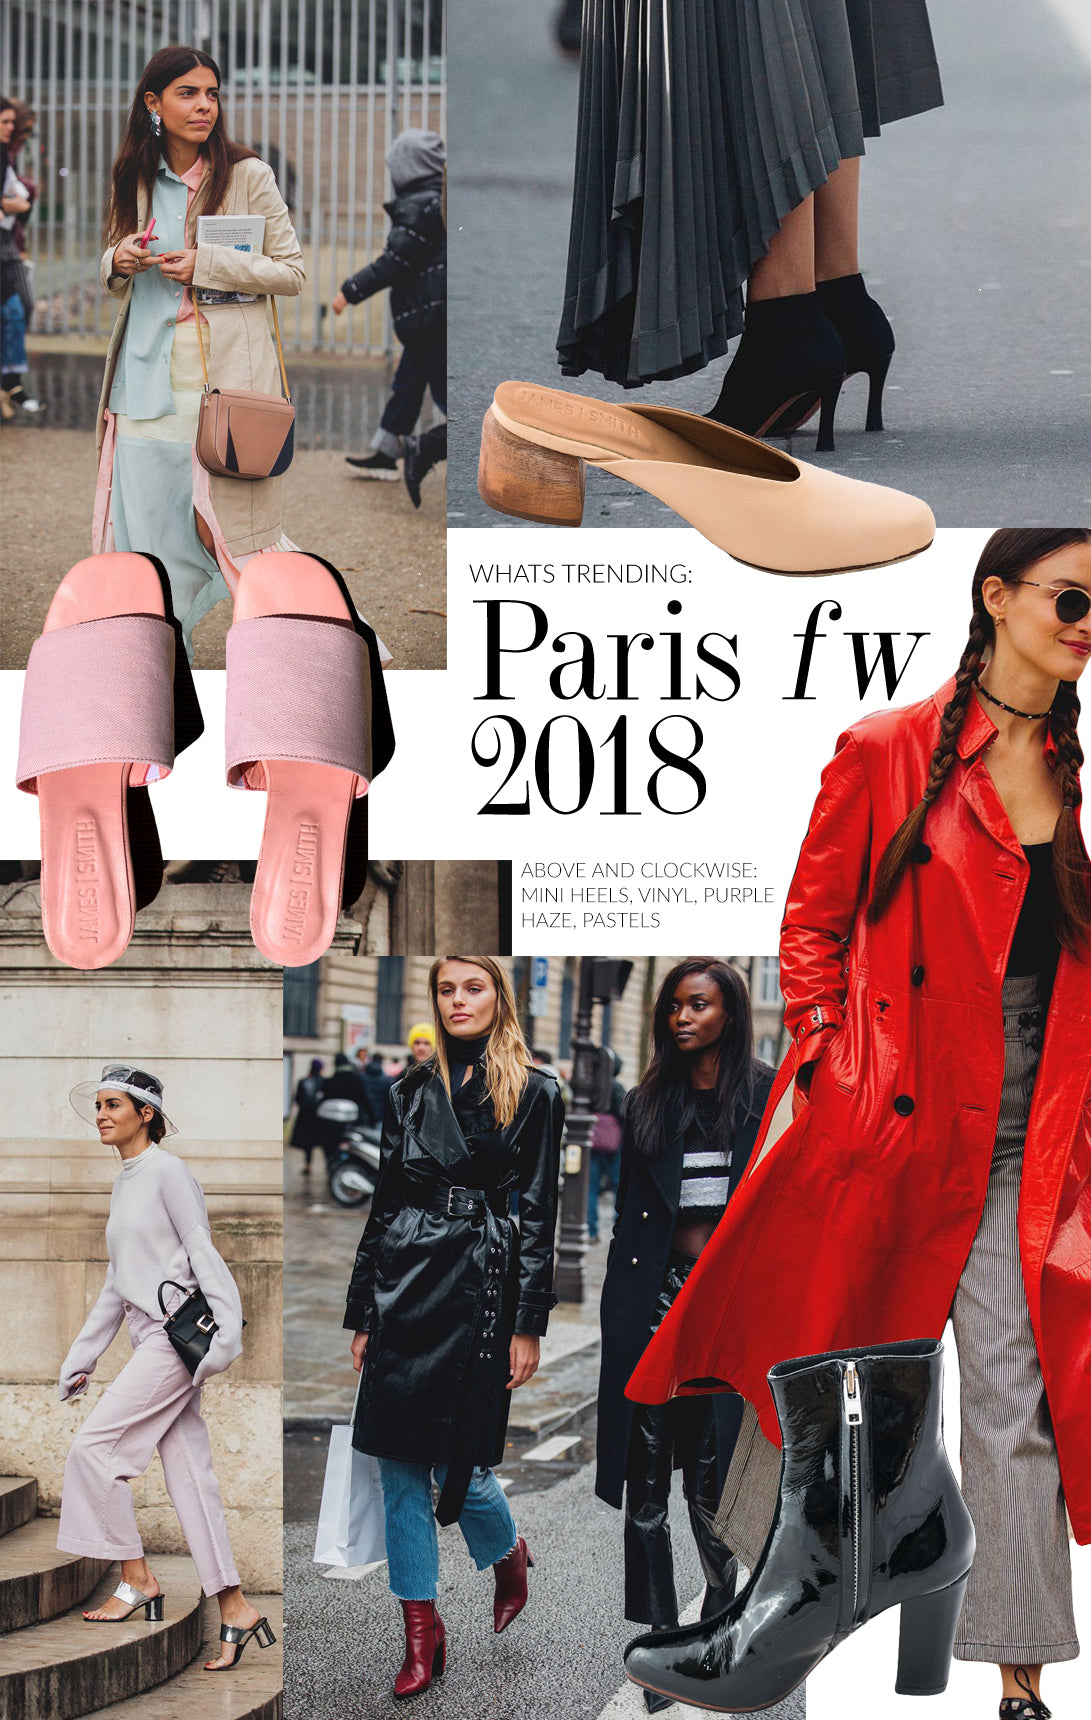 Parisian Fashion Trends for 2018 | Pastels and Vinyl | James Smith Slides